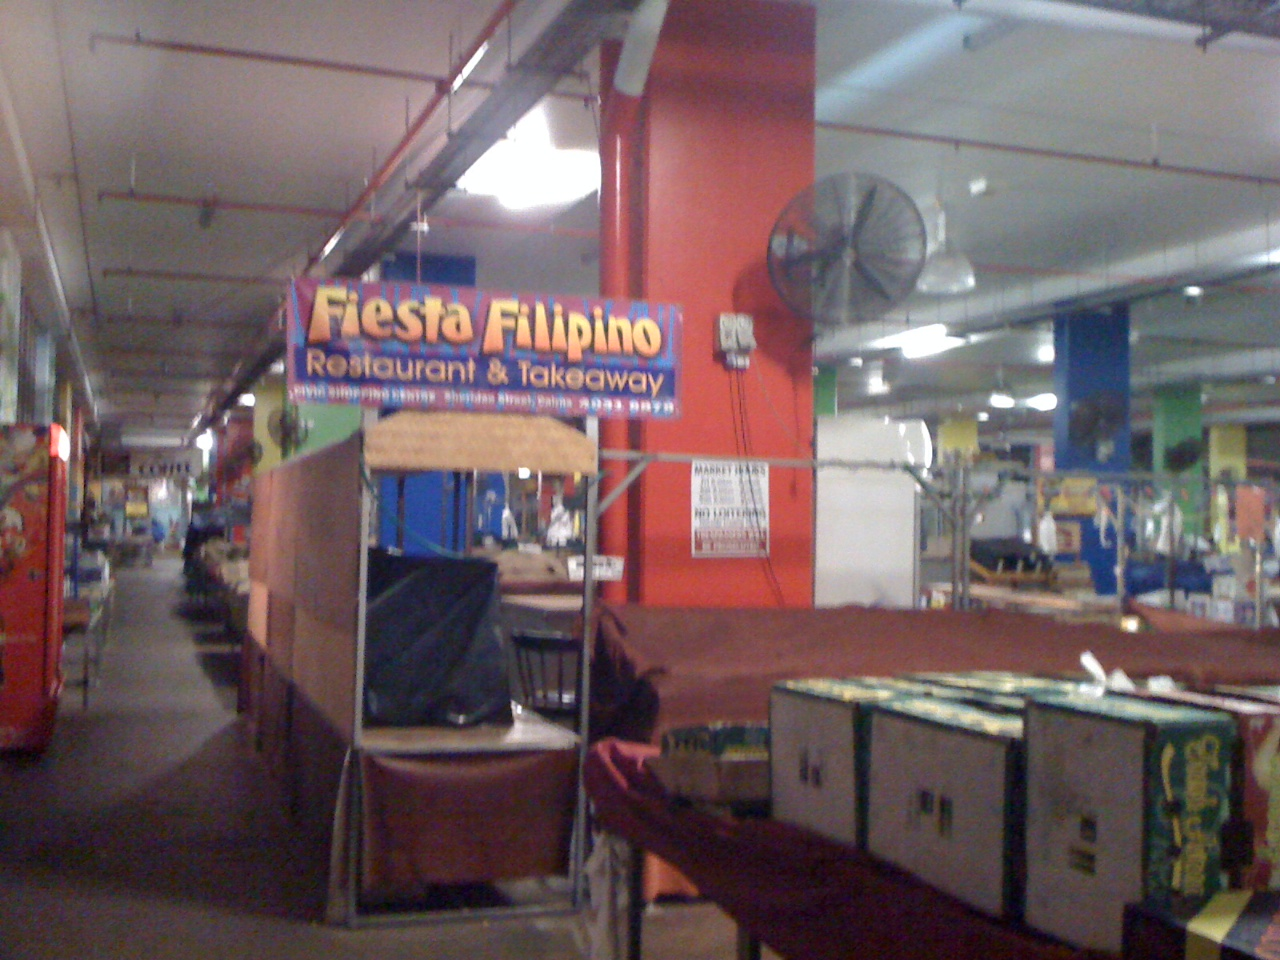 Fiesta Filipino stall, in the Cairns Night Market.